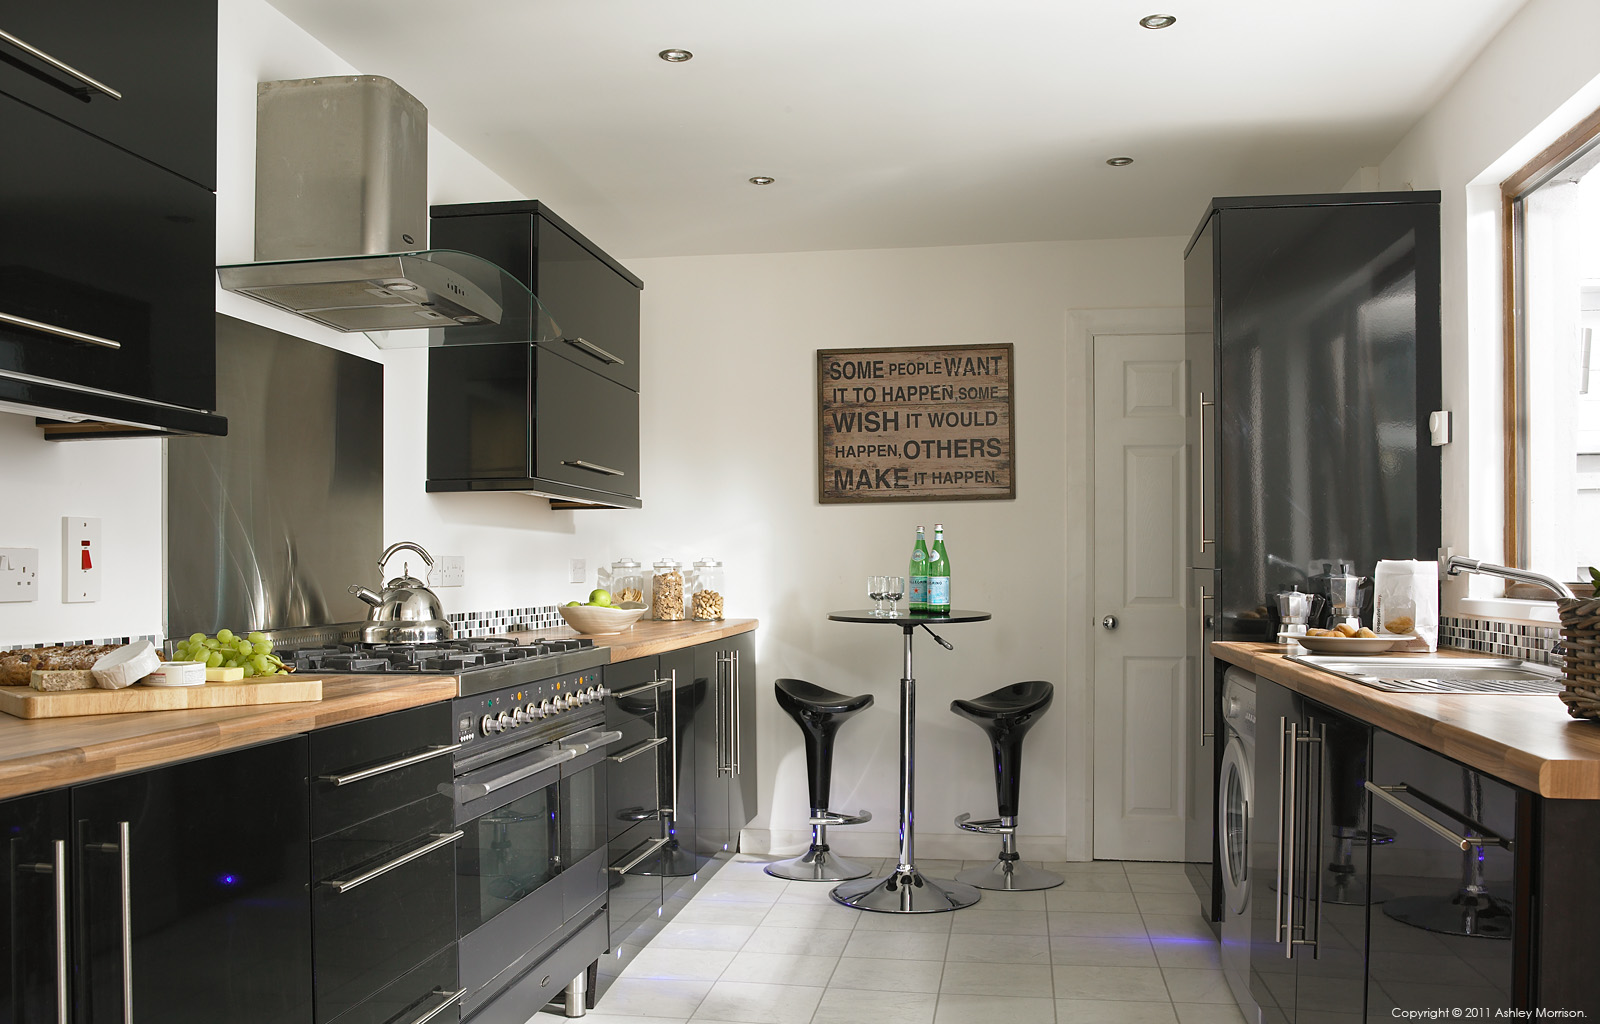 The kitchen in Janice & Billy Shannon's renovated three storey Edwardian mid terrace in Belfast.